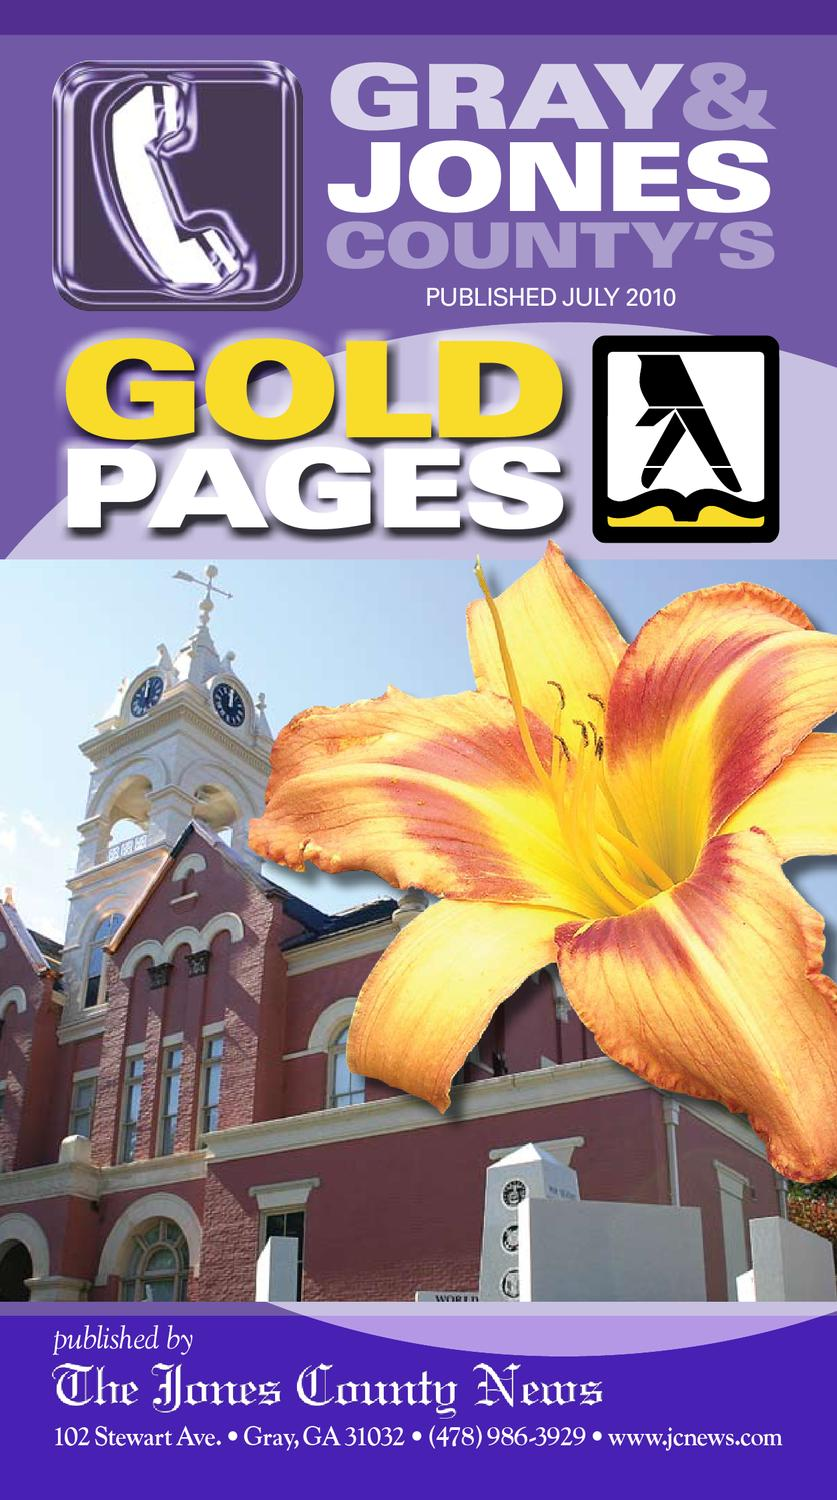 The Jones County Gold Pages By Josh Lurie